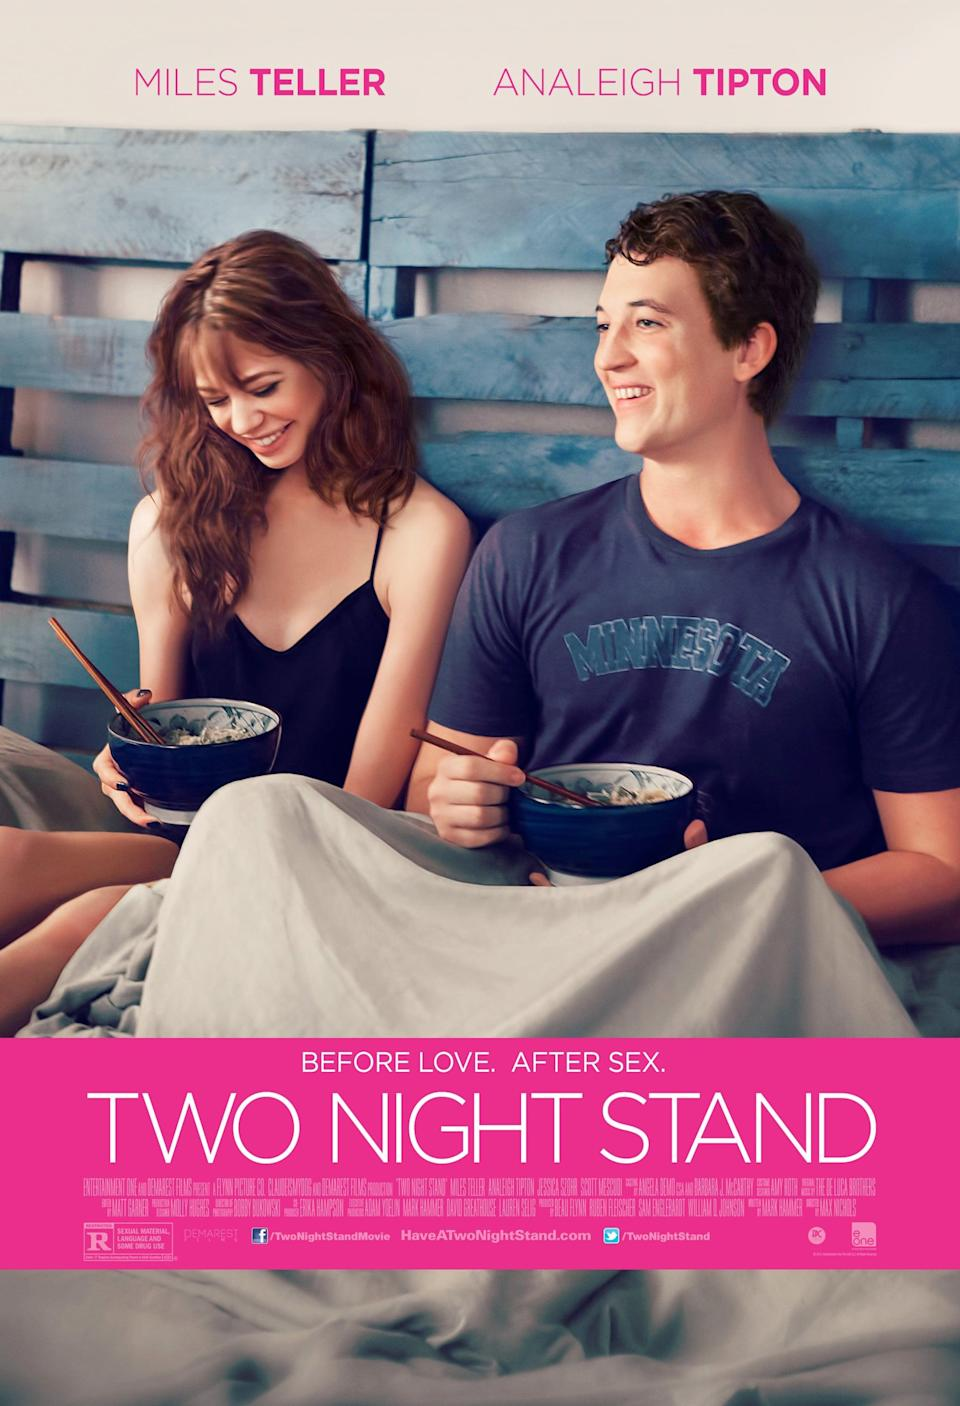 """<p>After swiping right on each other's dating profiles, Megan (Analeigh Tipton) and Alec (Miles Teller) are ready to take their flirty banter offline. What was supposed to be a one-and-done hook-up quickly turns into more after a blizzard traps these two in a New York City shoebox apartment.</p> <p><a href=""""http://www.amazon.com/Two-Night-Stand-Analeigh-Tipton/dp/B00OKA8LCU"""" class=""""link rapid-noclick-resp"""" rel=""""nofollow noopener"""" target=""""_blank"""" data-ylk=""""slk:Watch Two Night Stand on Amazon Prime."""">Watch <strong>Two Night Stand</strong> on Amazon Prime.</a></p>"""